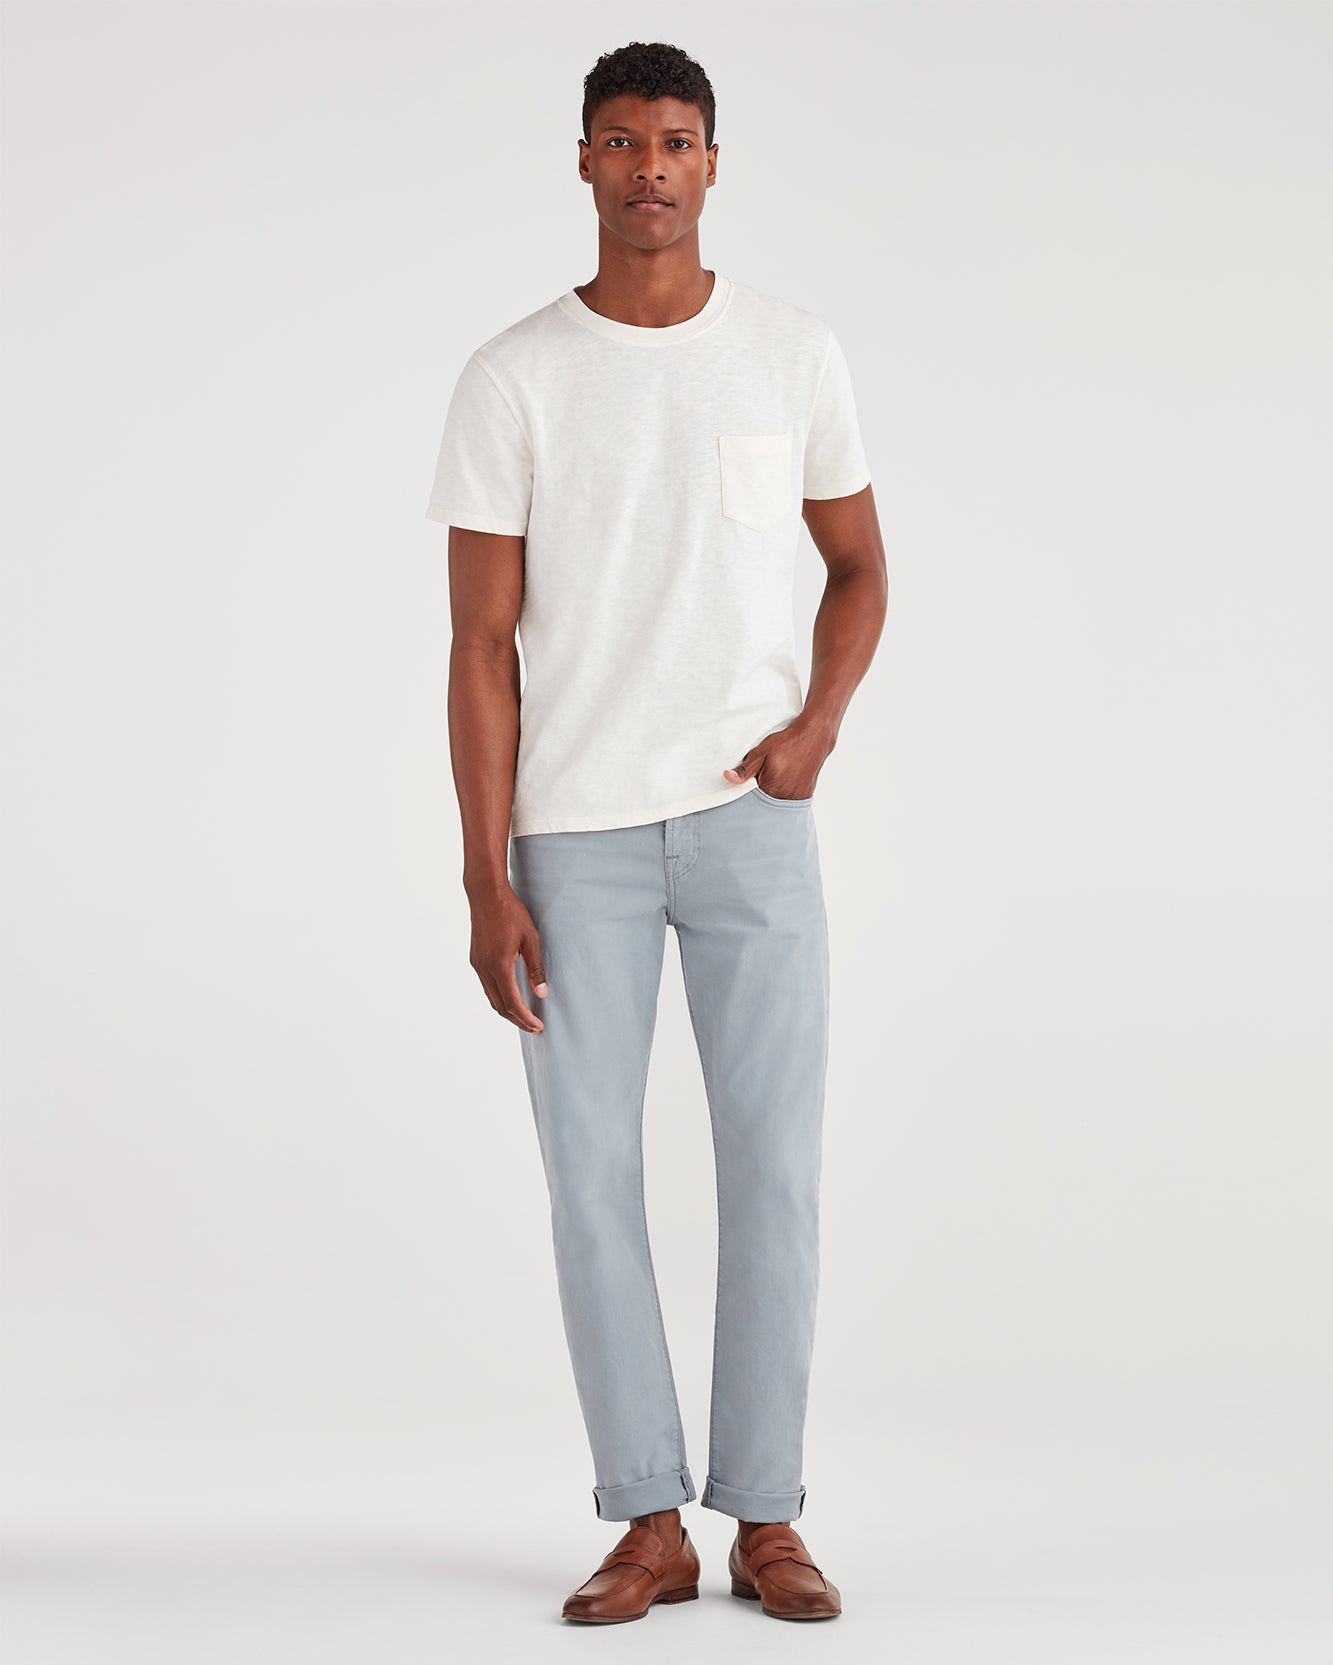 Image of Total Twill Adrien with Clean Pocket in Light Grey